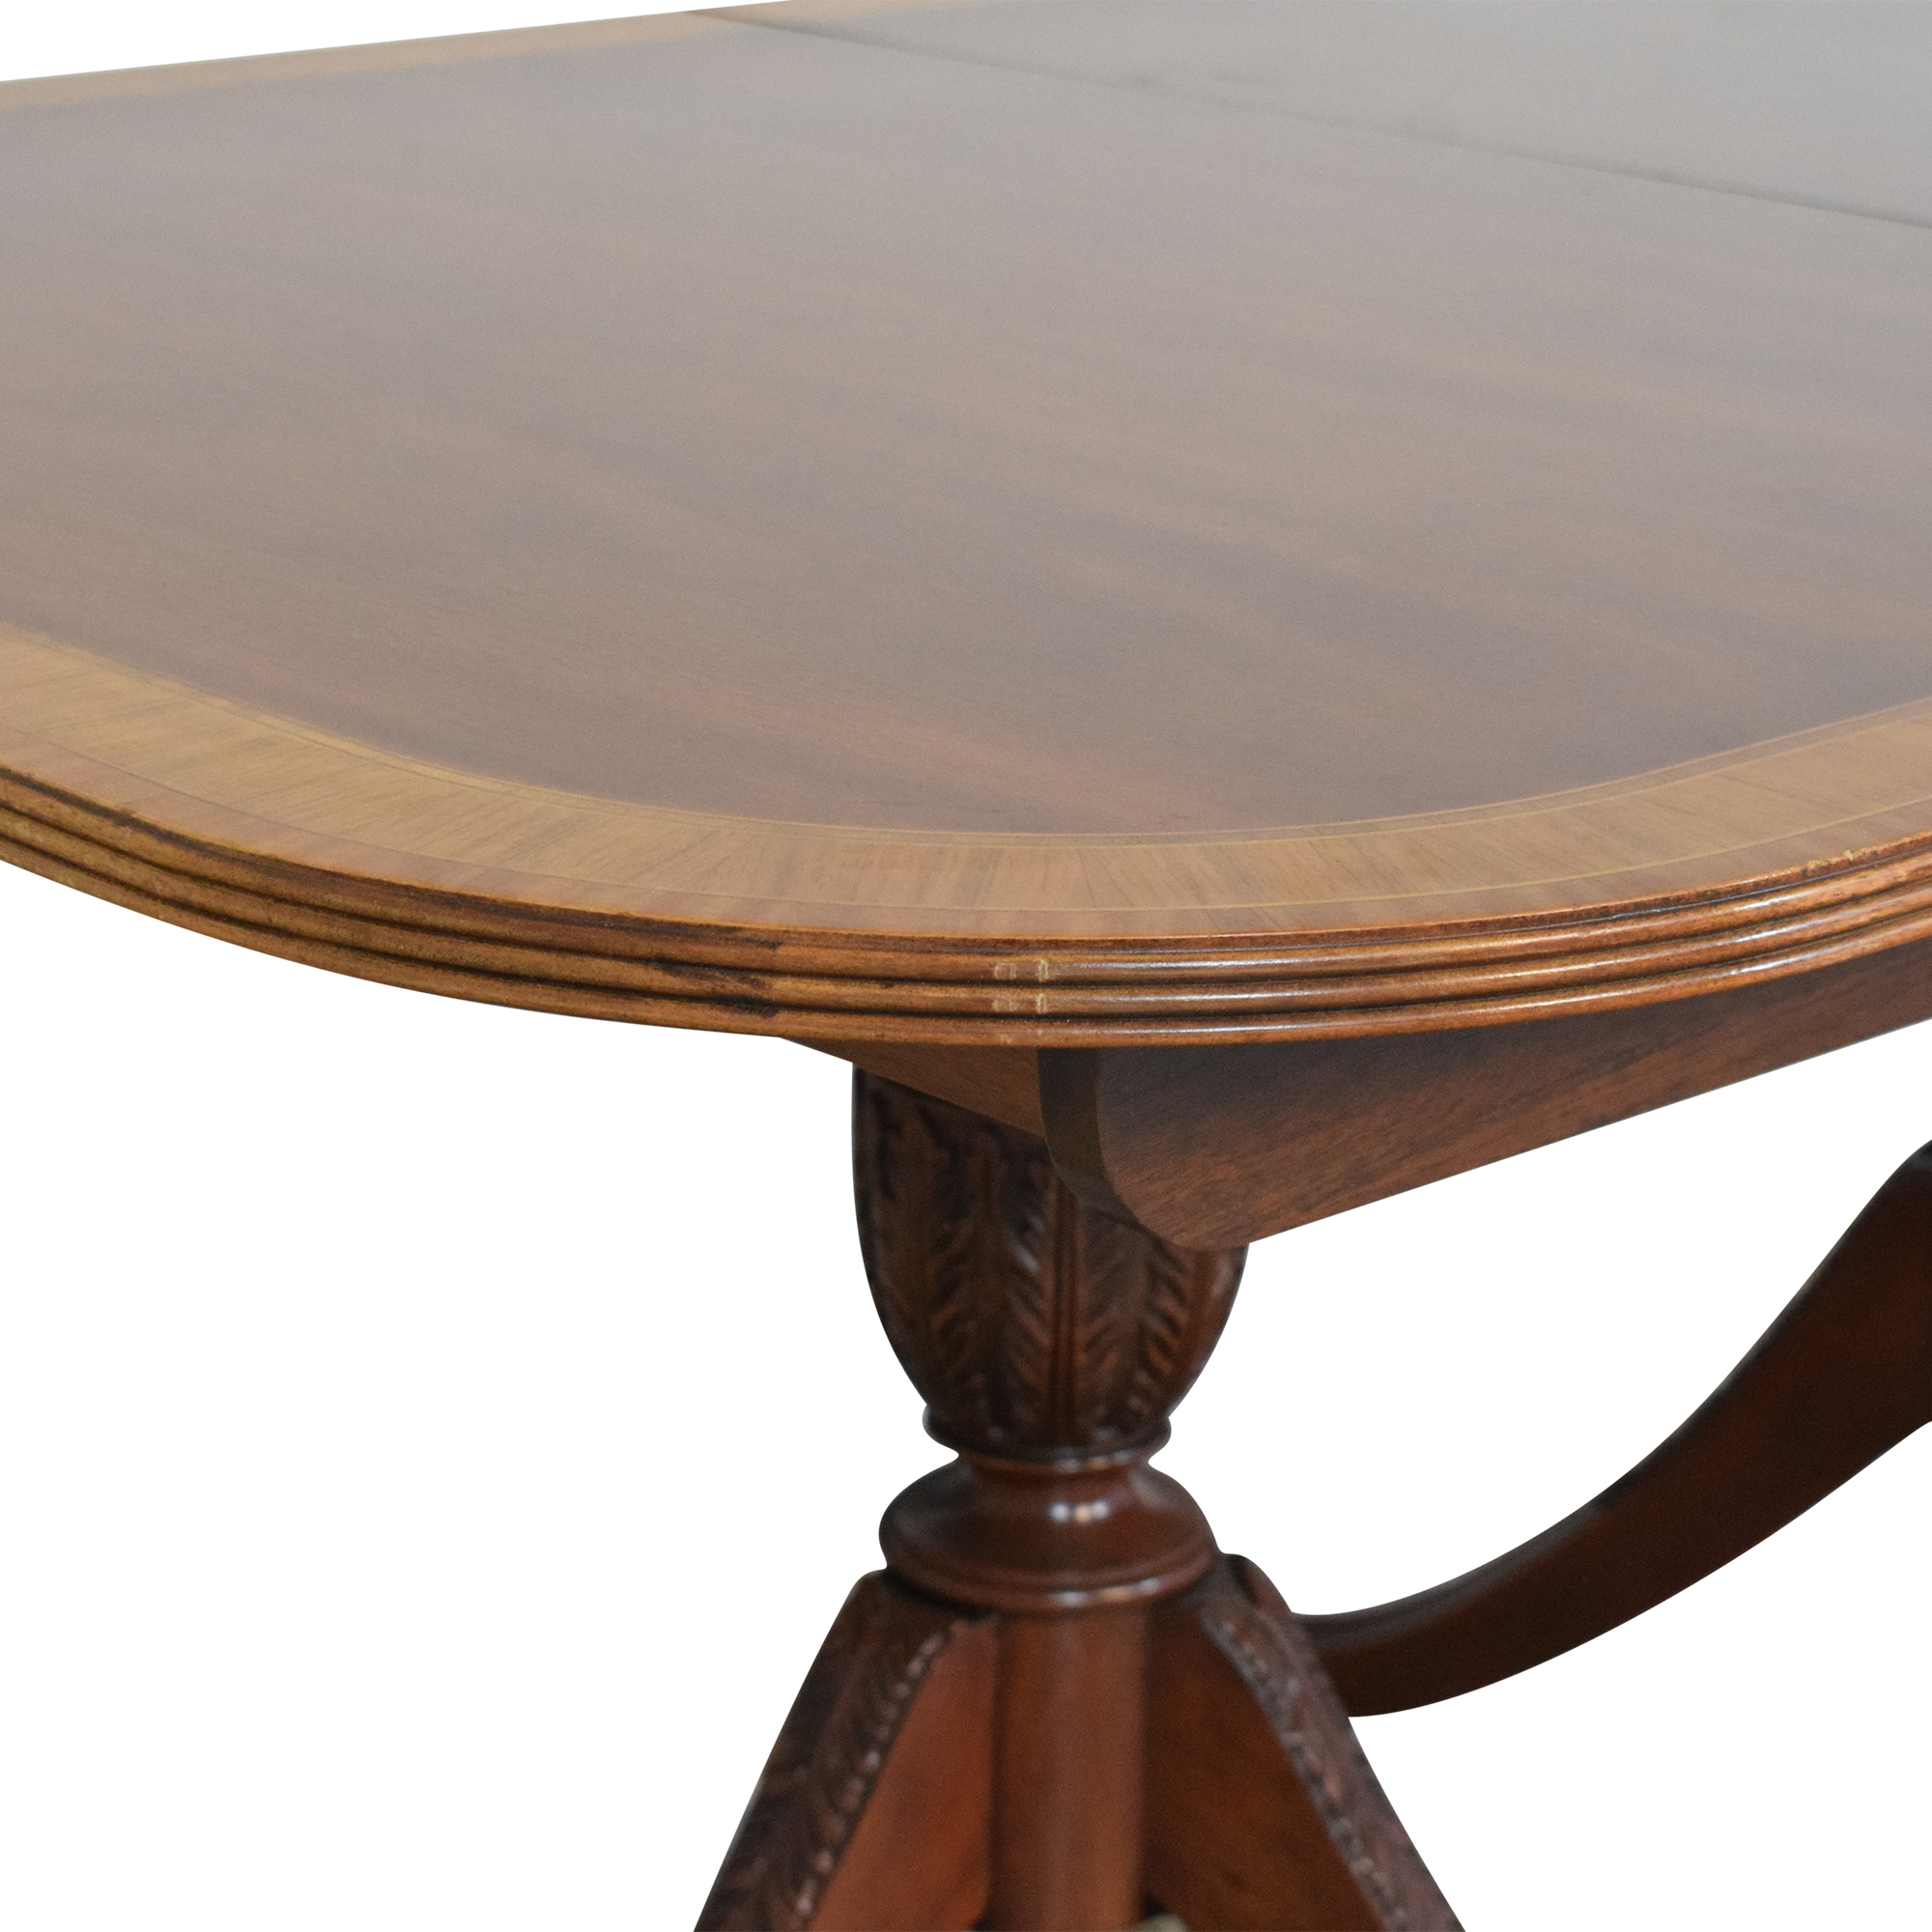 Councill Councill Craftsman Georgian Banded Extendable Dining Table nj